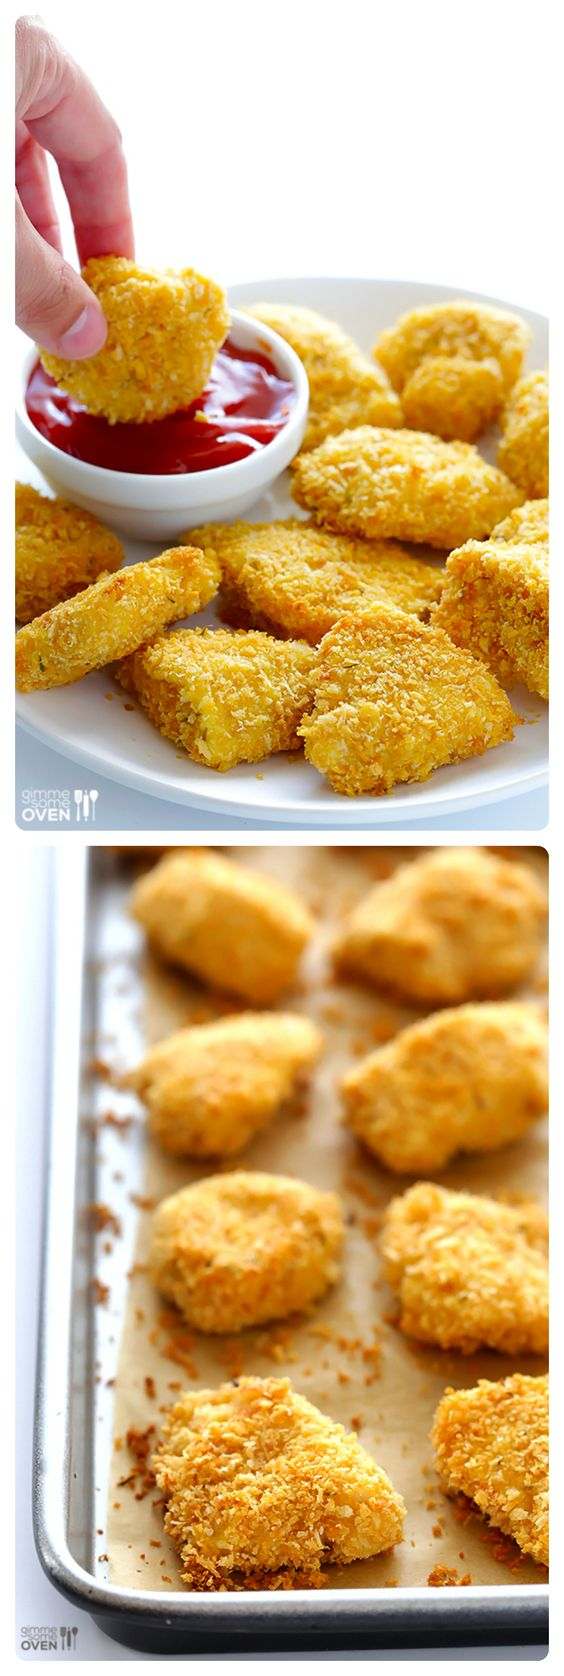 Parmesan Baked Chicken Nuggets | Recipe | Baked chicken ...